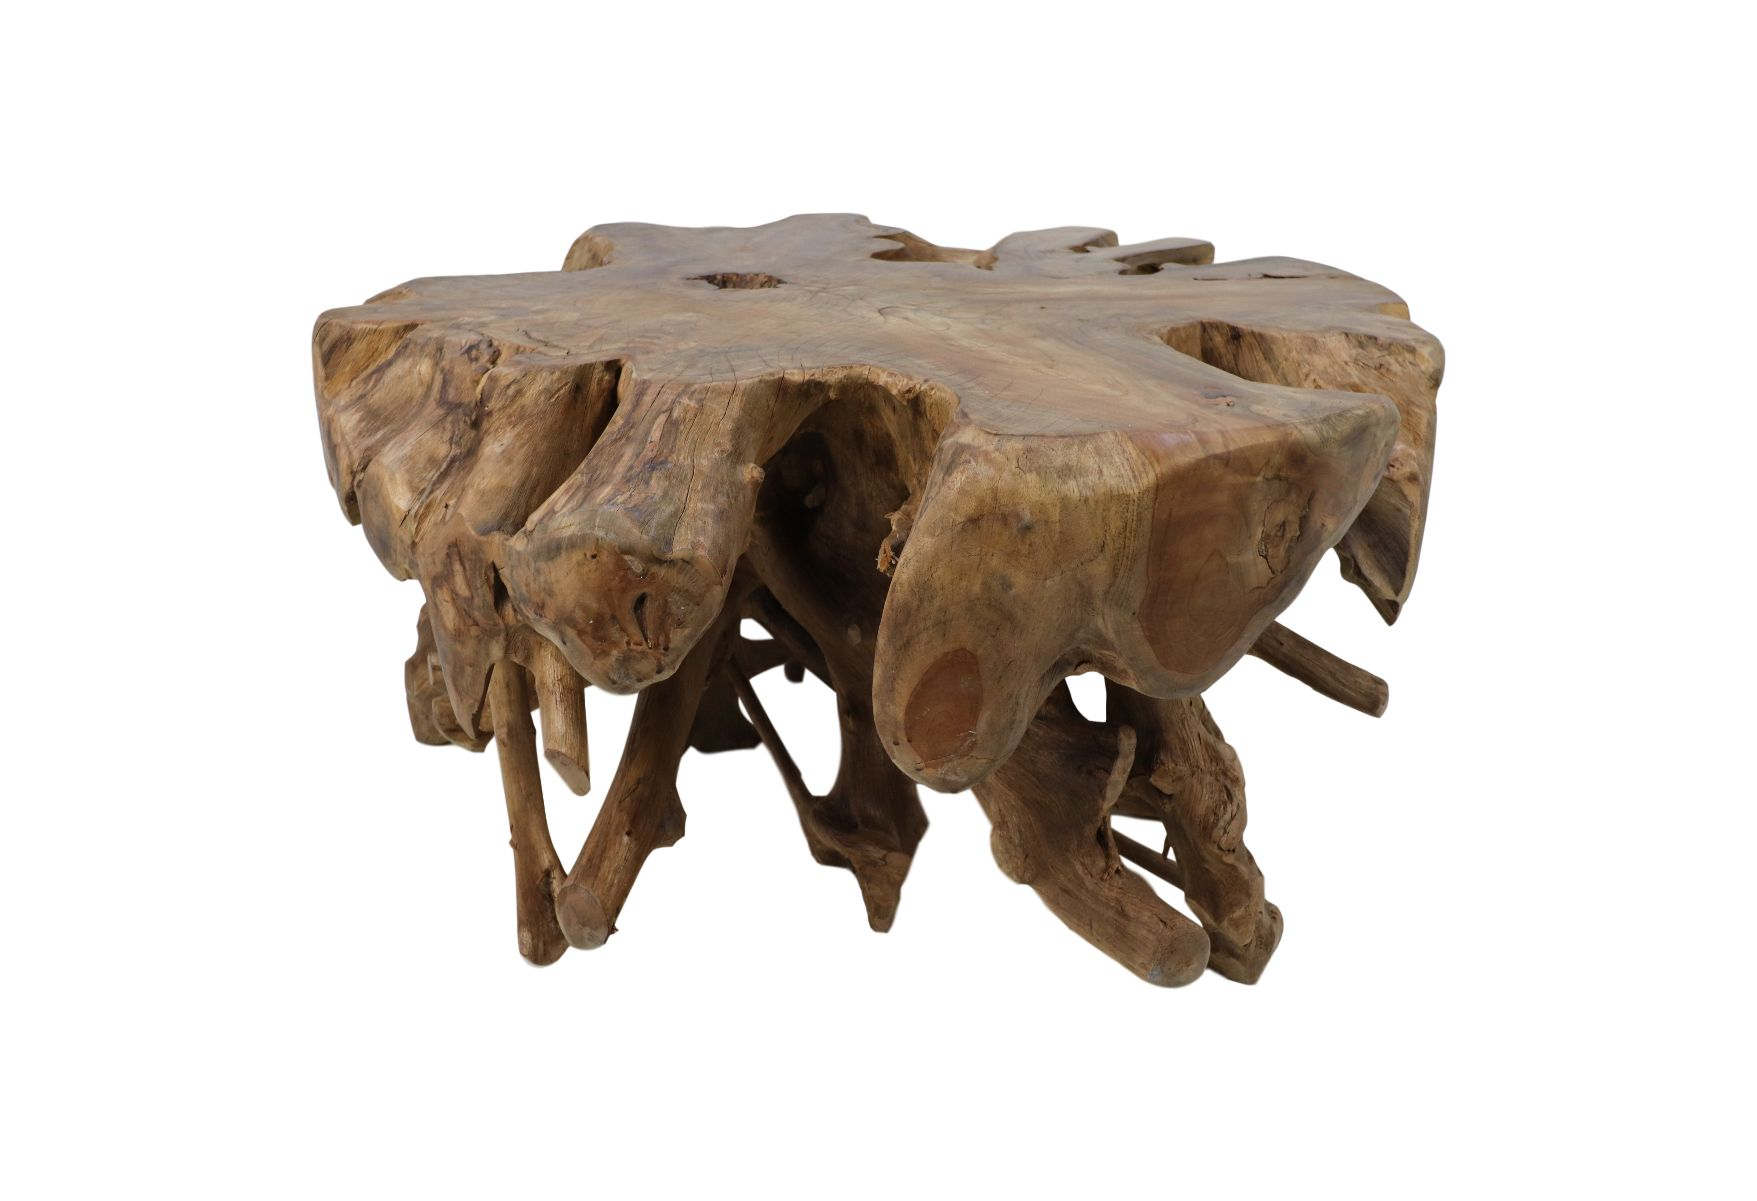 Solid Rustic Teak Root Furniture Unique Coffee Side Spider Table Home or Garden